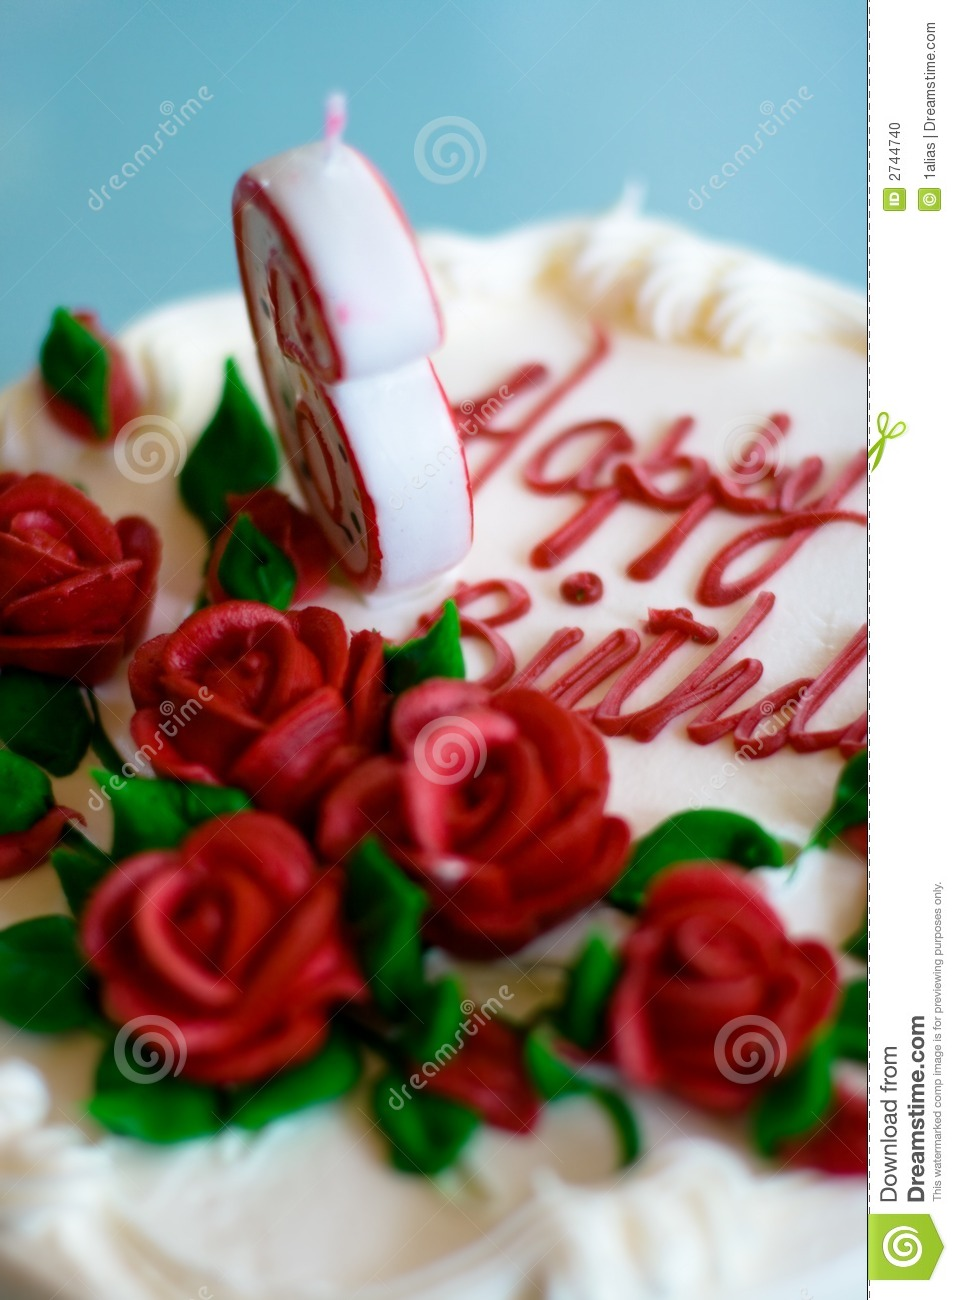 Birthday Cake Stock Photo Image Of Cake Decorations 2744740